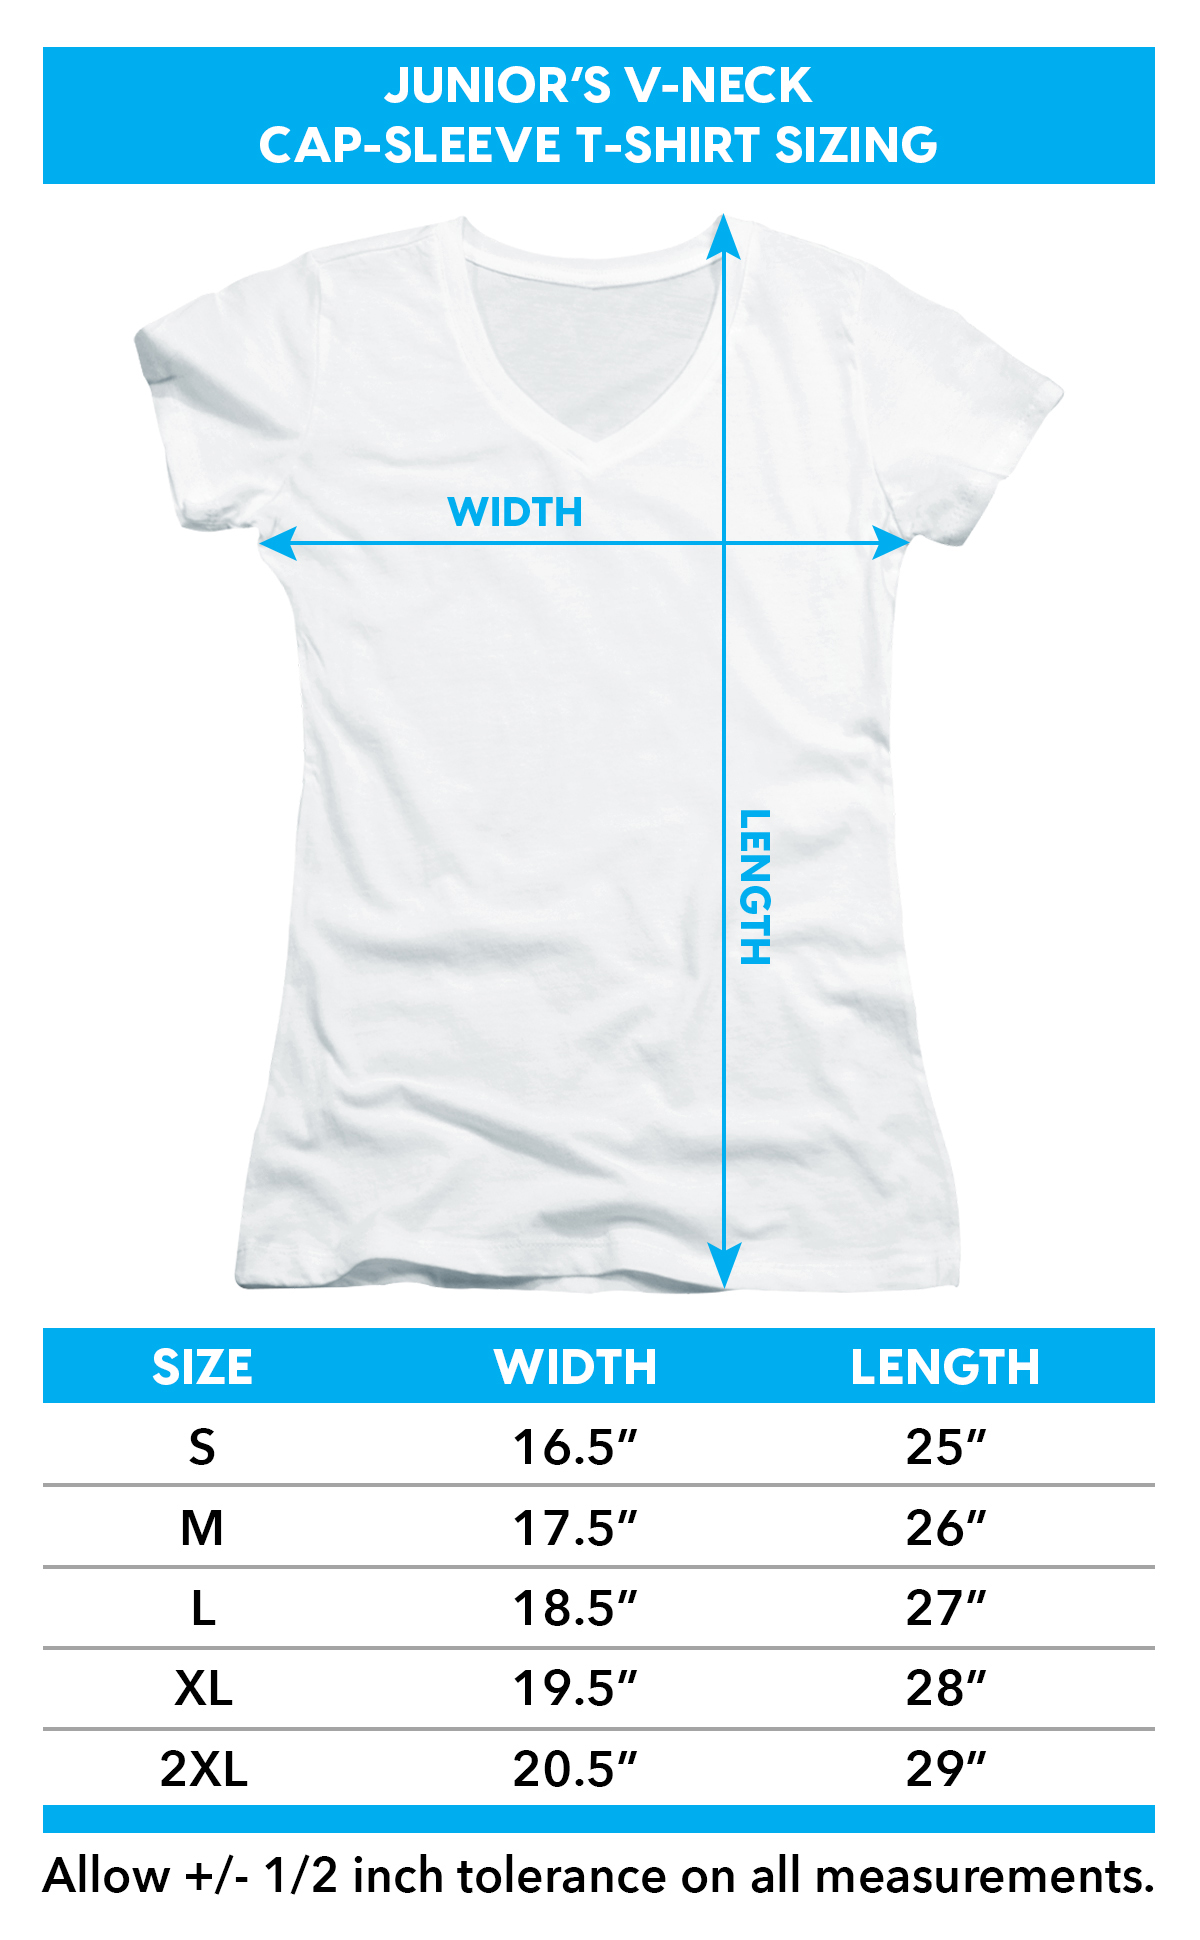 Sizing chart for Pulp Fiction Girls V Neck - Choices TRV-MIRA140-JV